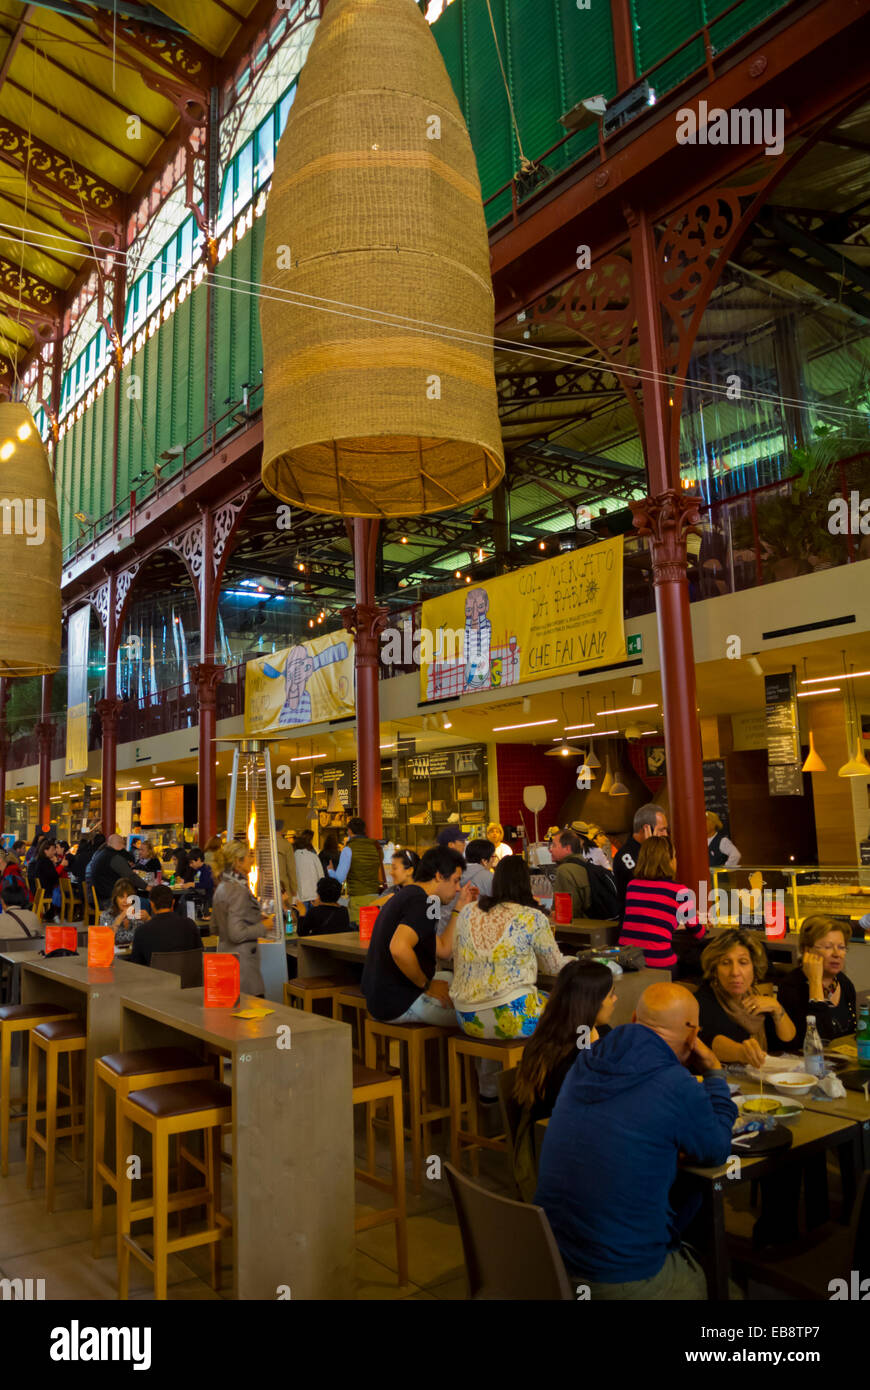 2nd floor food court, Mercato centrale, central market hall, Florence, Tuscany, Italy - Stock Image